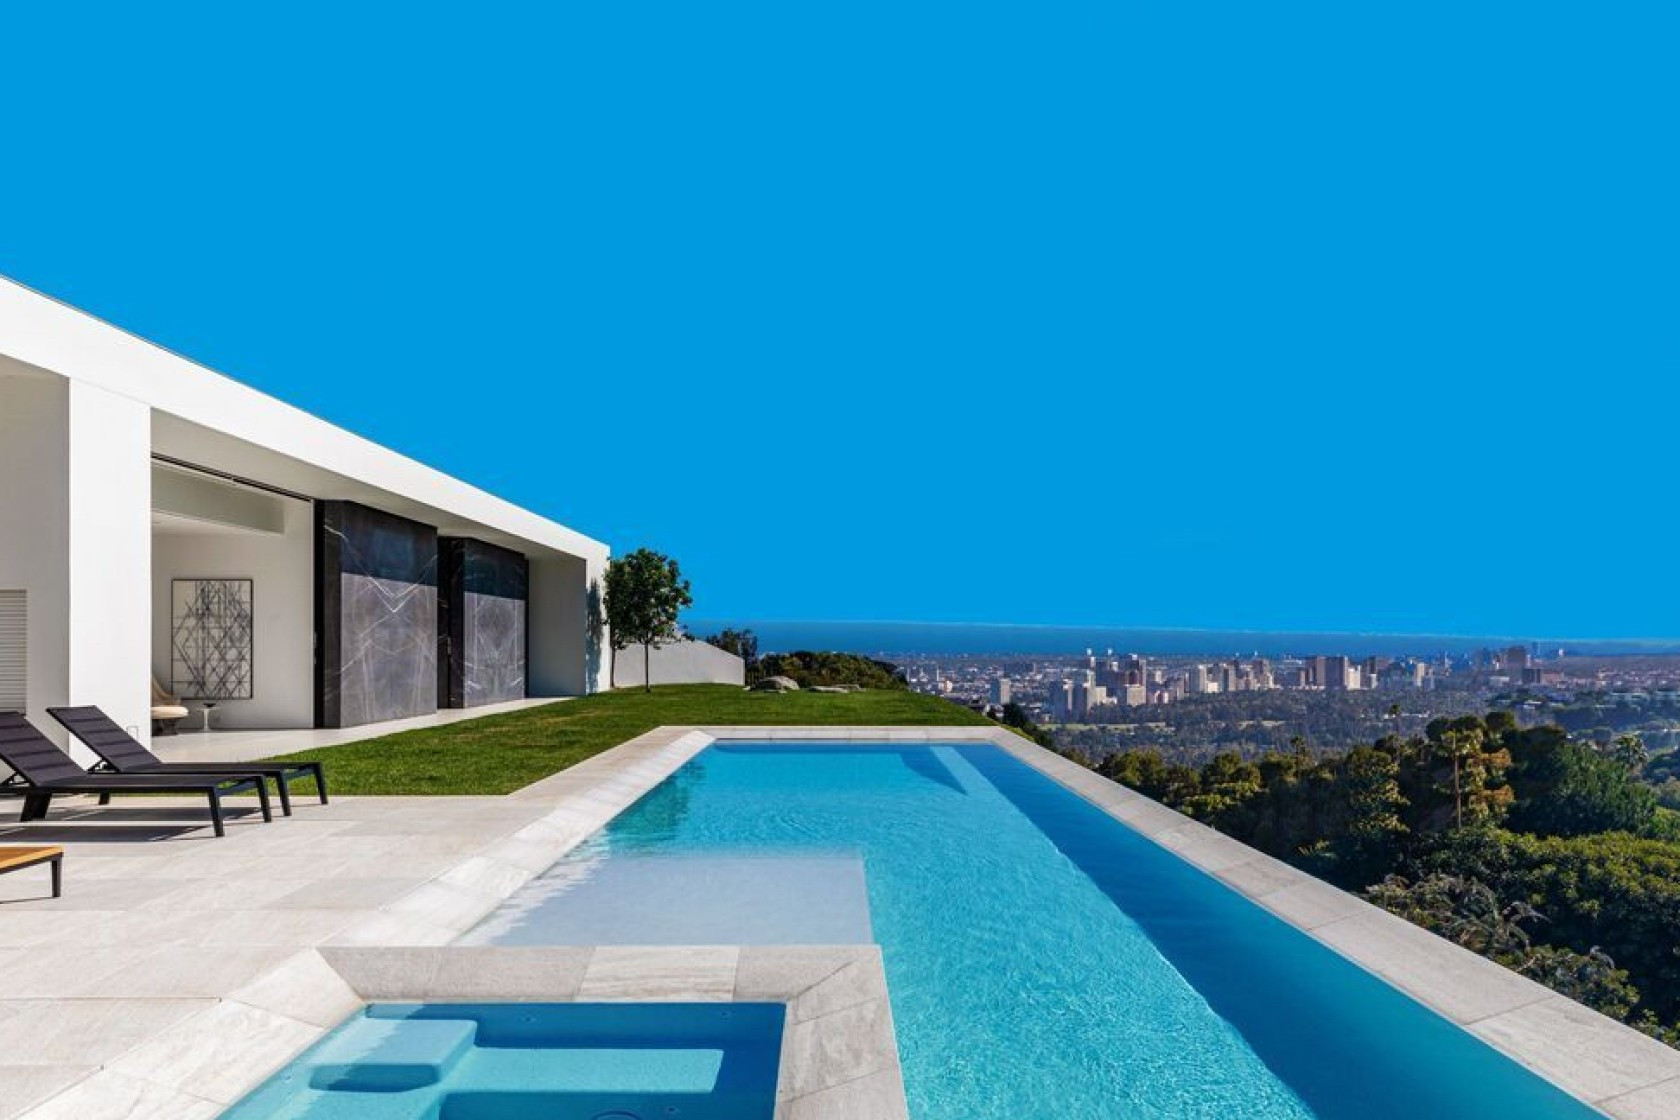 The  futuristic five-bedroom house has sweeping views down to the Pacific Ocean ©Realtor.com